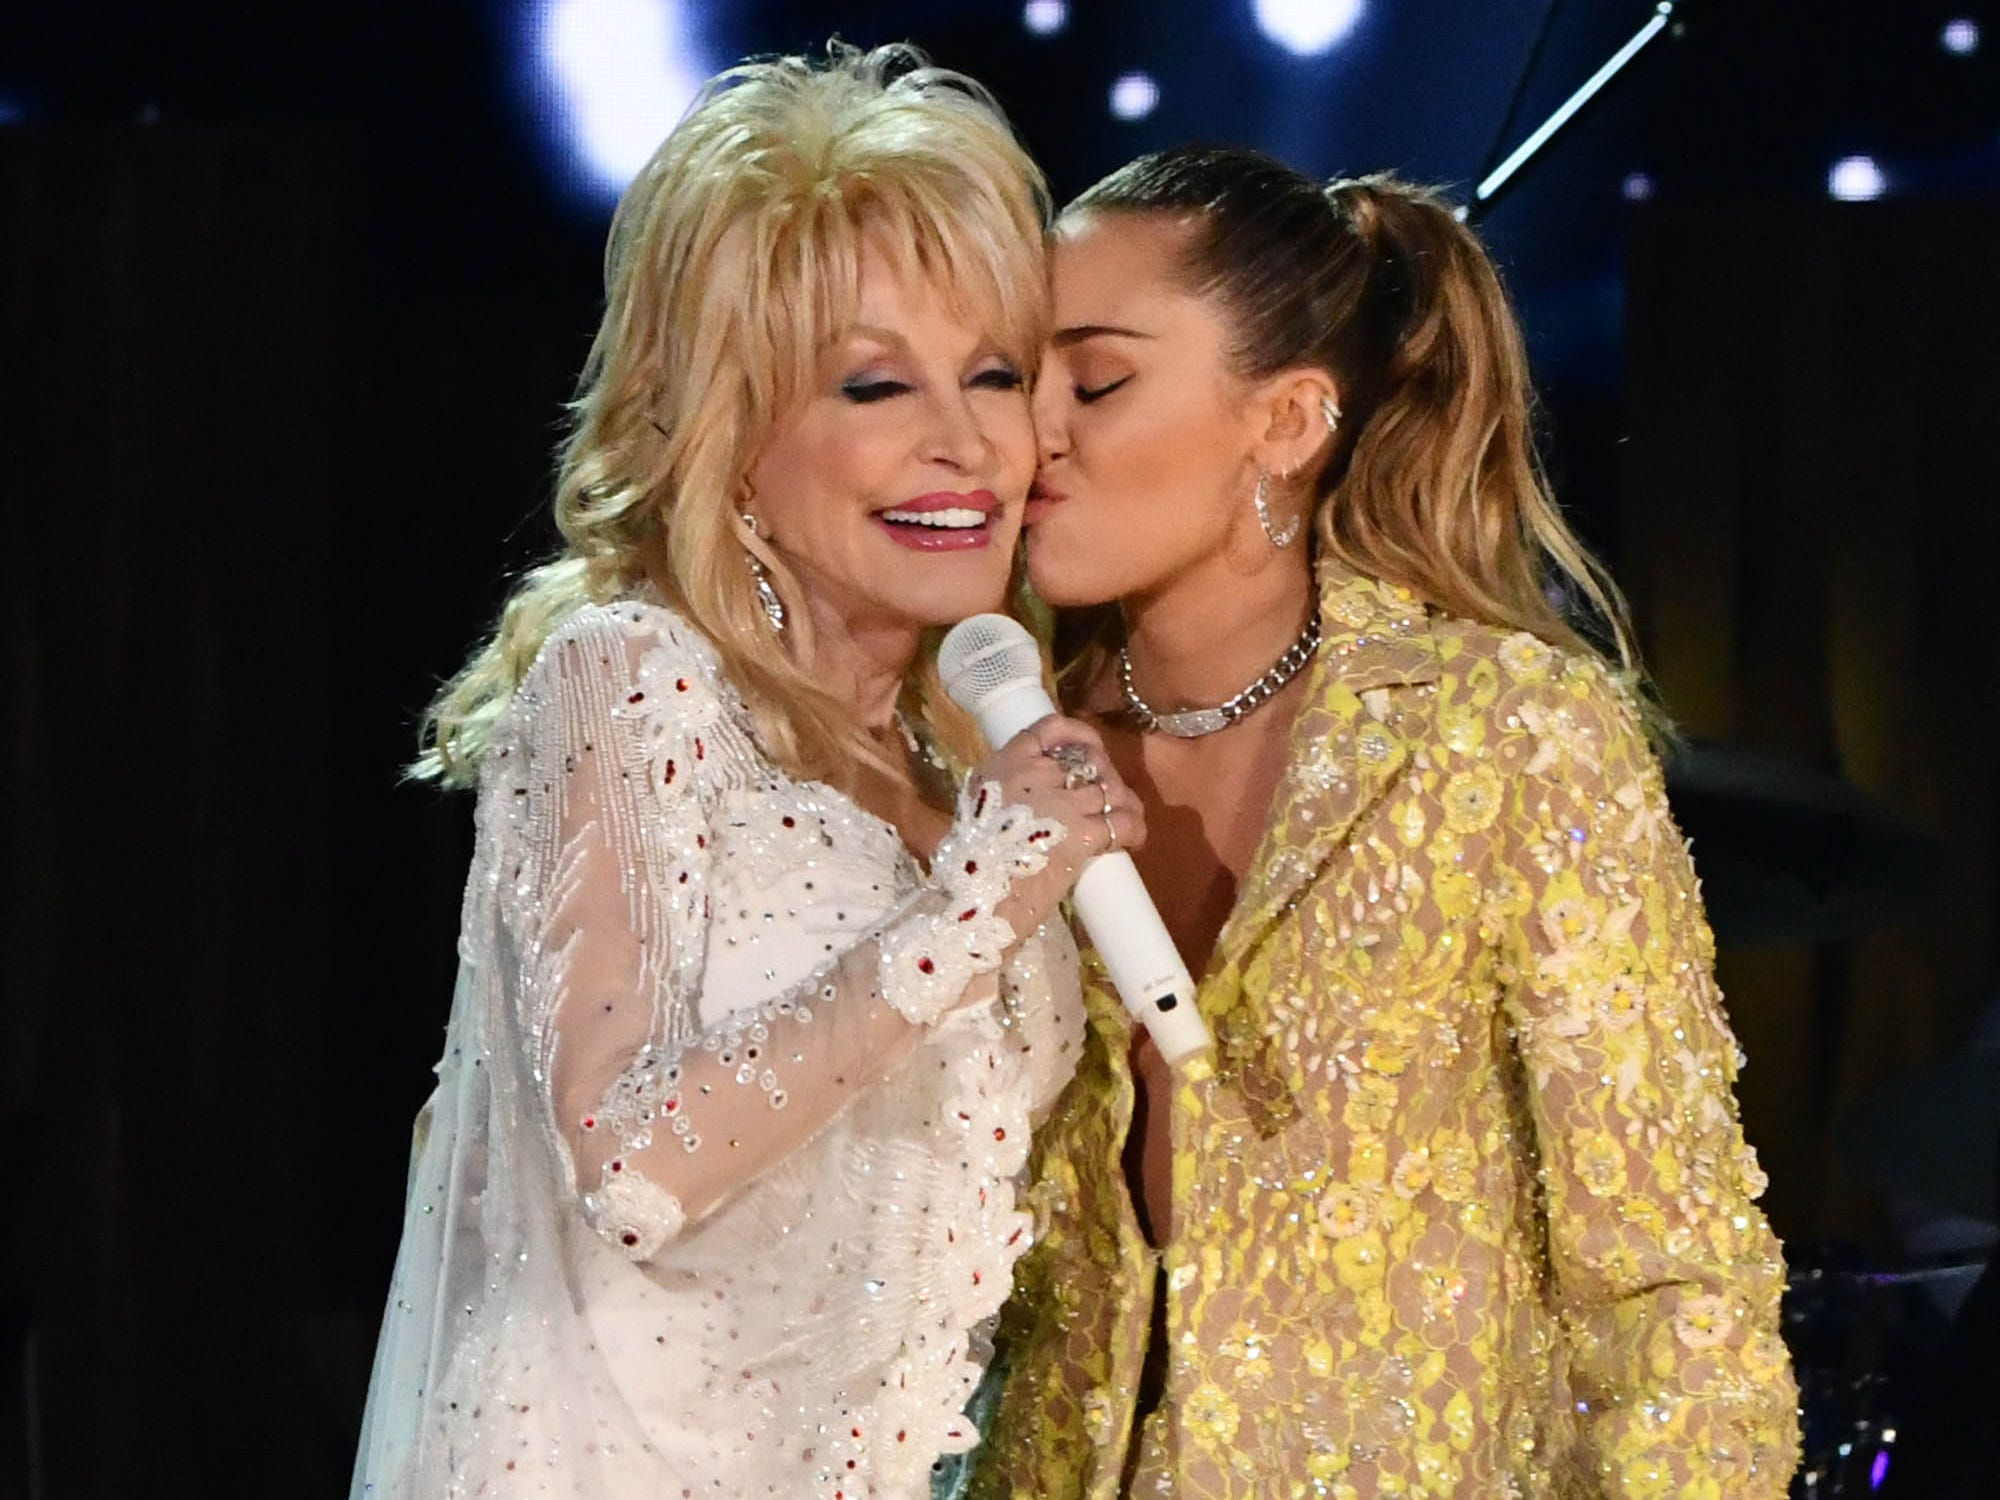 Miley Cyrus kisses Dolly Parton during a tribute to Dolly Parton at the 61st Annual GRAMMY Awards on Feb. 10, 2019 at STAPLES Center in Los Angeles, Calif.